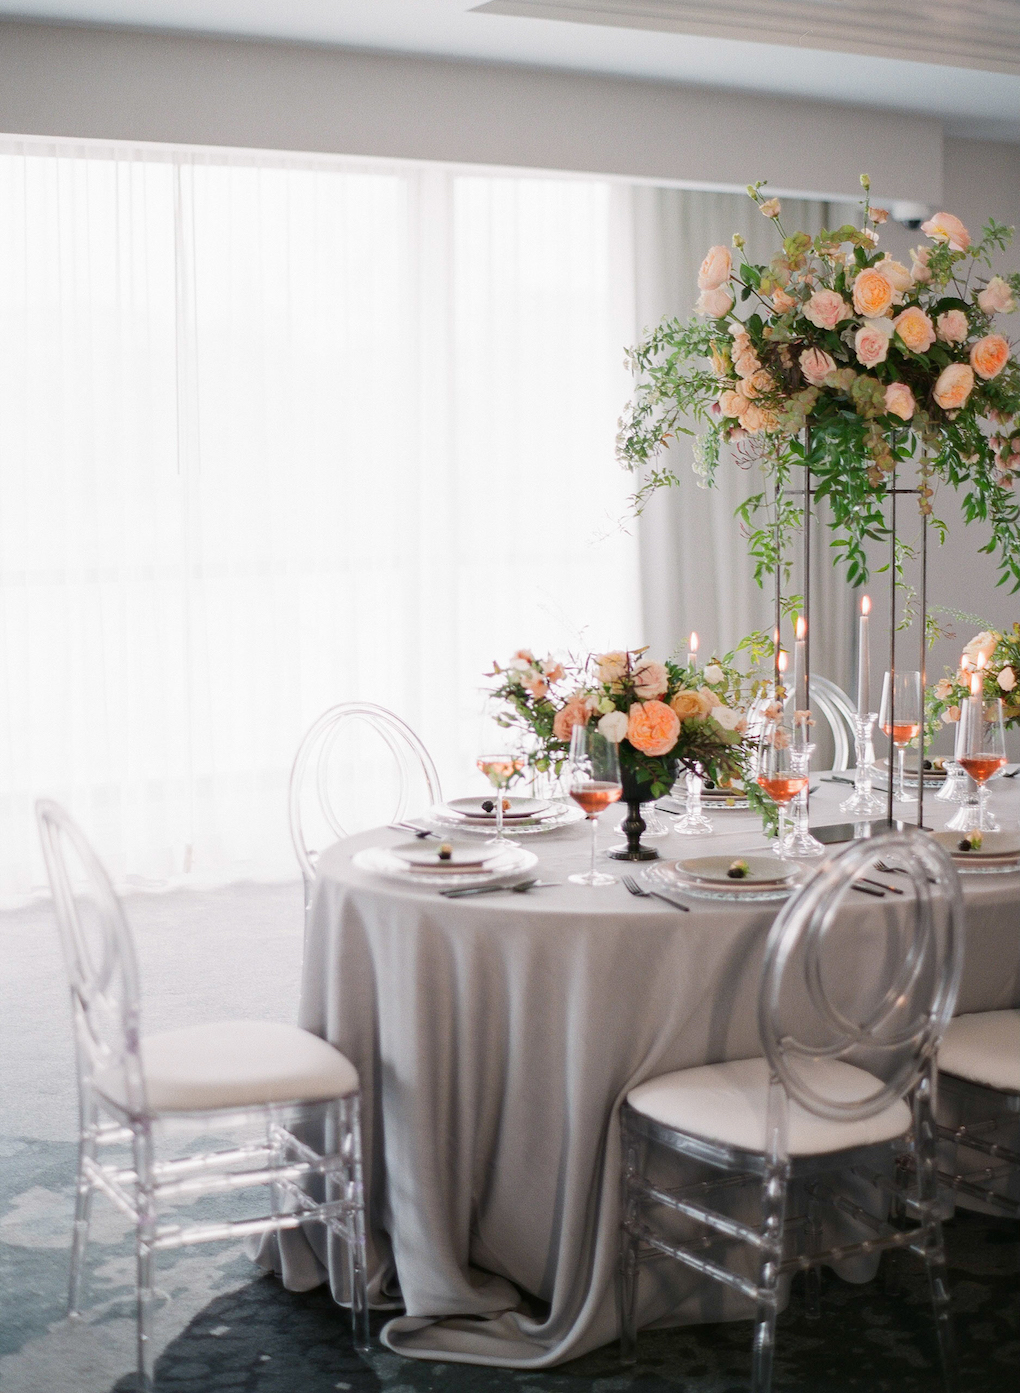 Grey and Pink Wedding Design: Soft and Subtle Palettes of Spring Blossoms | Editorial Shoot at The Renaissance Pittsburgh by Exhale Events. See more inspiration at exhale-events.com!